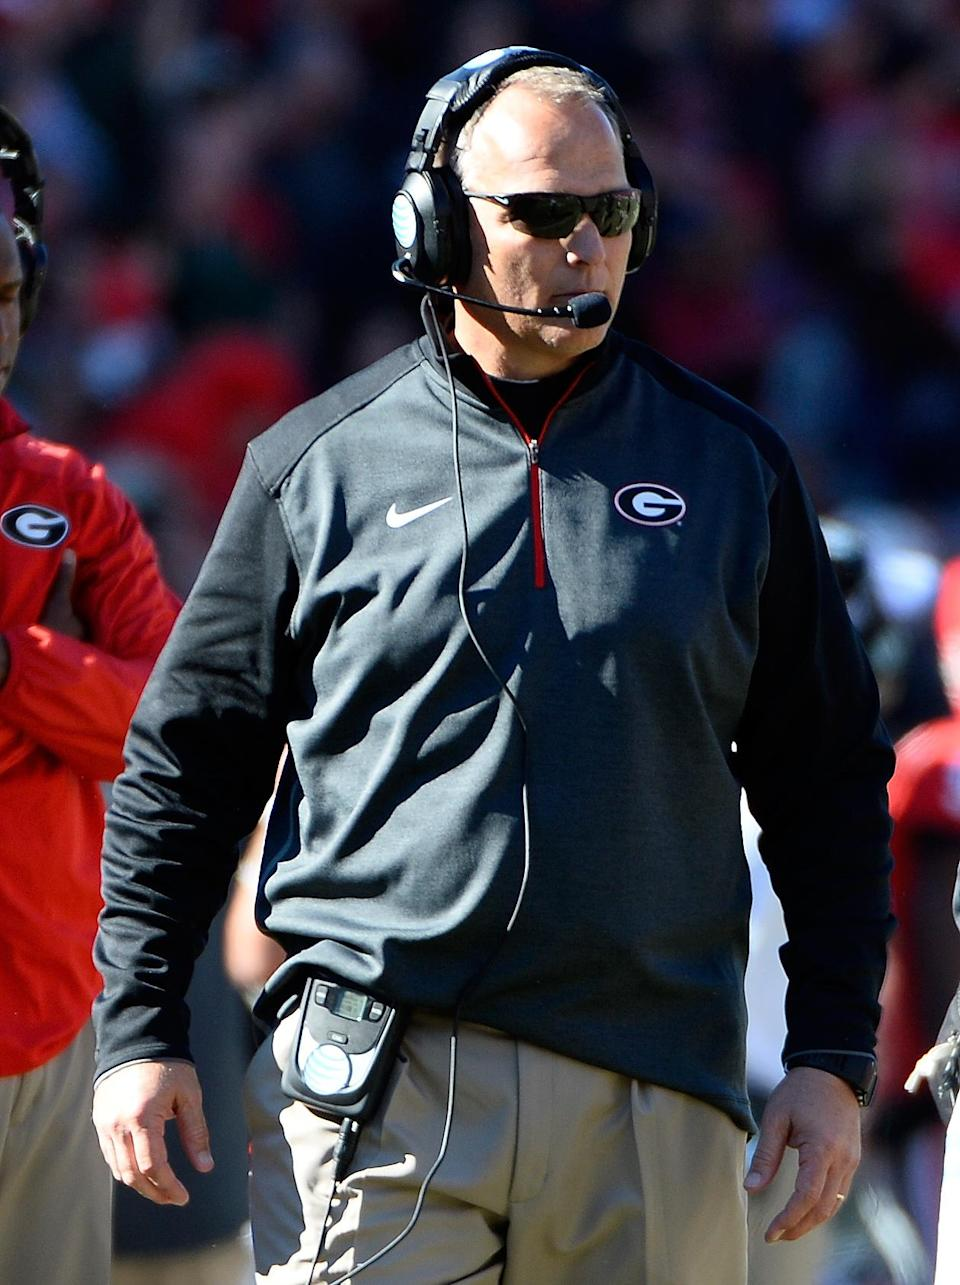 Georgia head coach Mark Richt watches from the sideline against Georgia Tech during the first half of an NCAA college football game Saturday, Nov. 29, 2014, in Athens, Ga. (AP Photo/David Tulis)